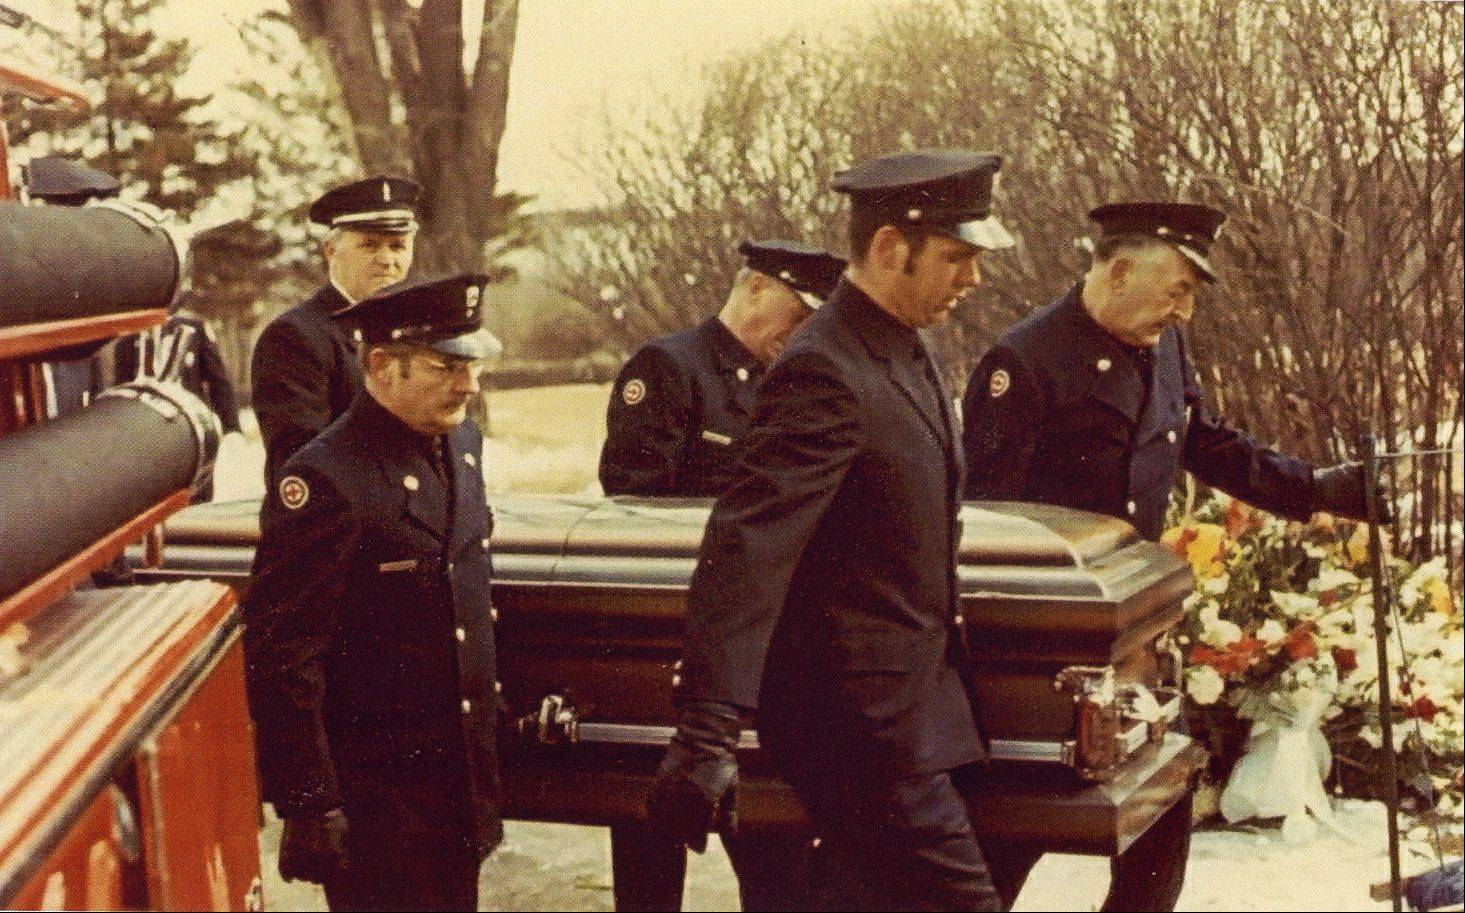 Palatine firefighters carry the casket of one of their three fallen brothers who died Feb. 23, 1973, fighting the Ben Franklin store fire.